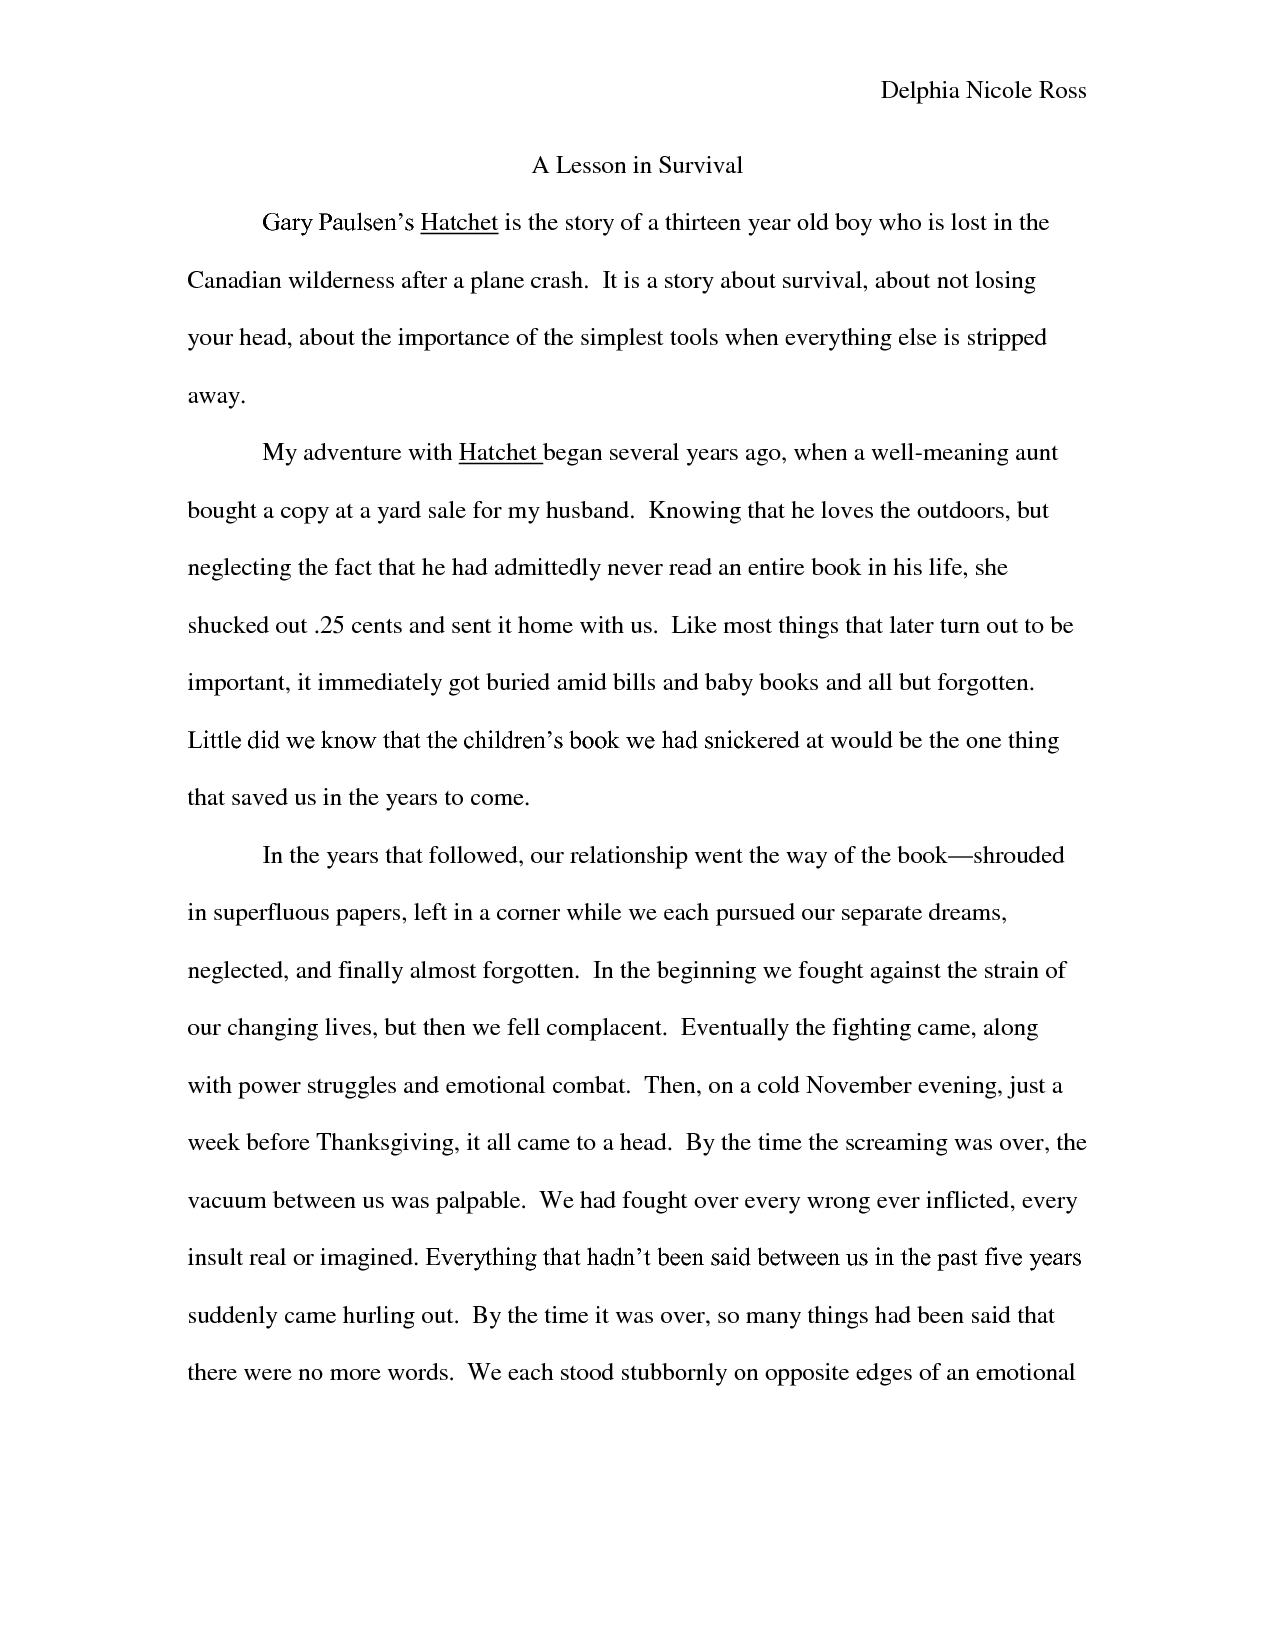 Worksheets Hatchet Worksheets hatchet gary paulsen book summary s is the story of a thirteen